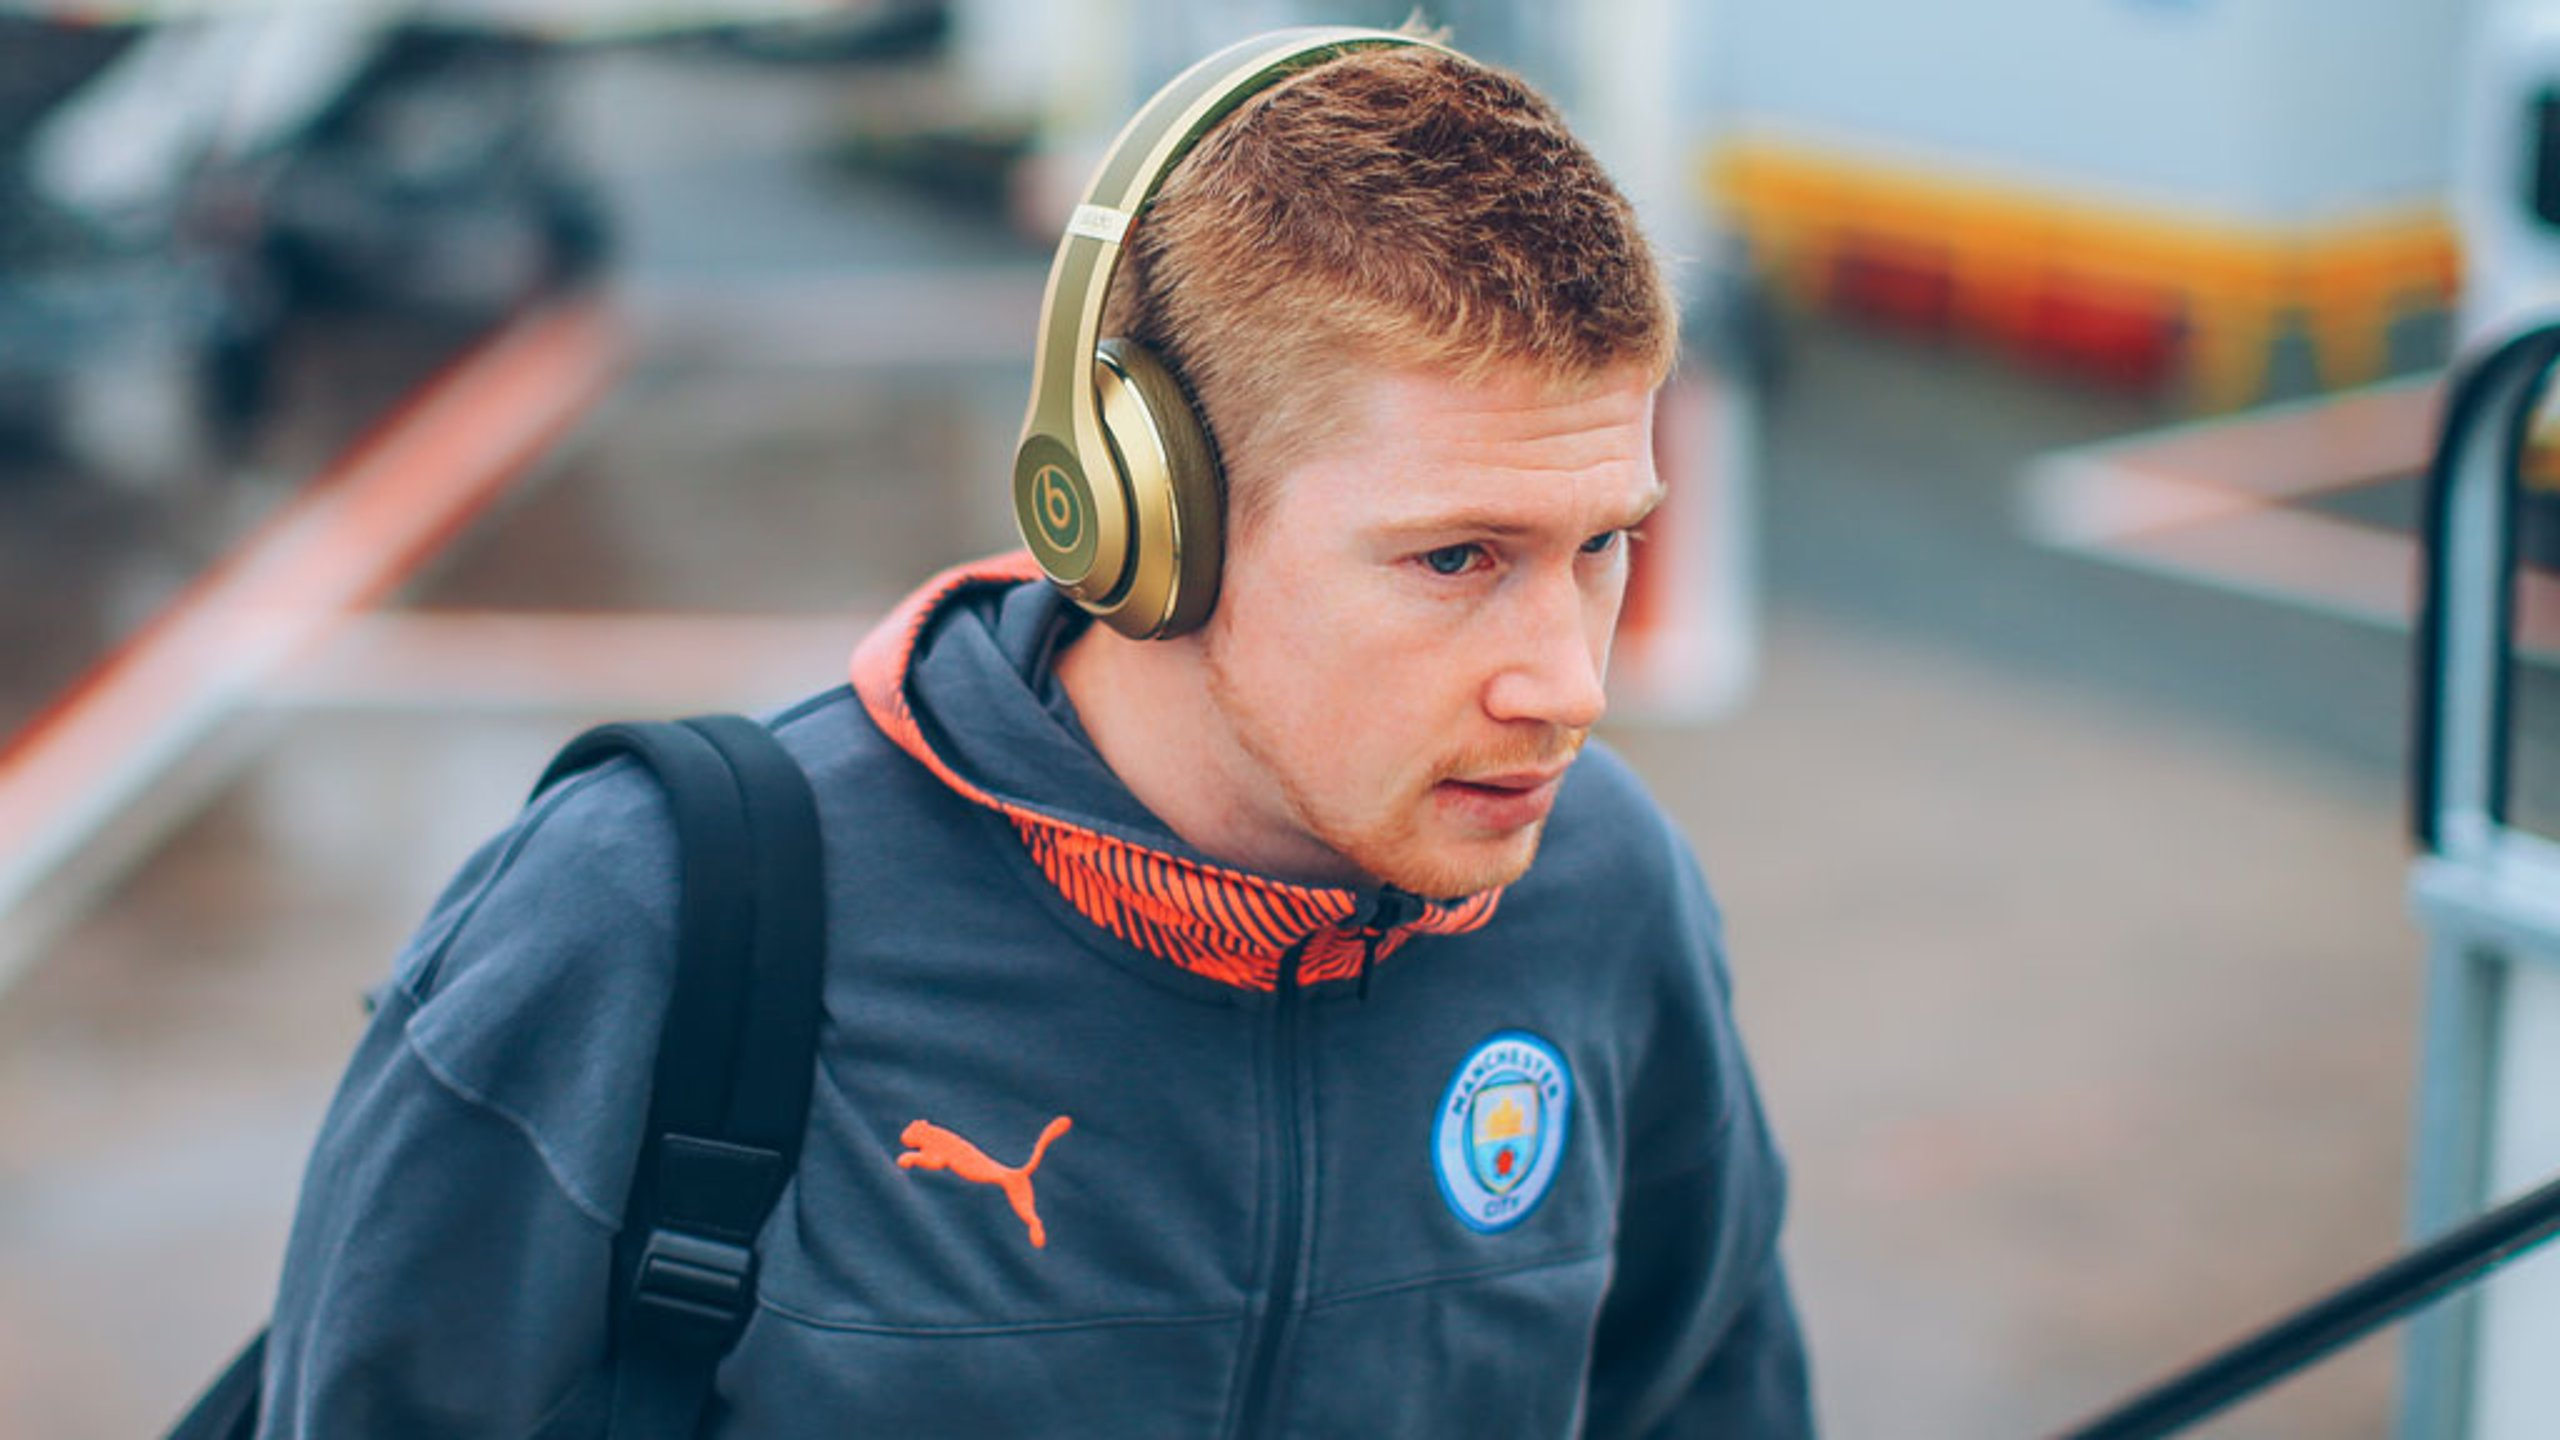 EAR WE GO: Kevin De Bruyne sported some nifty headphones ahead of departure